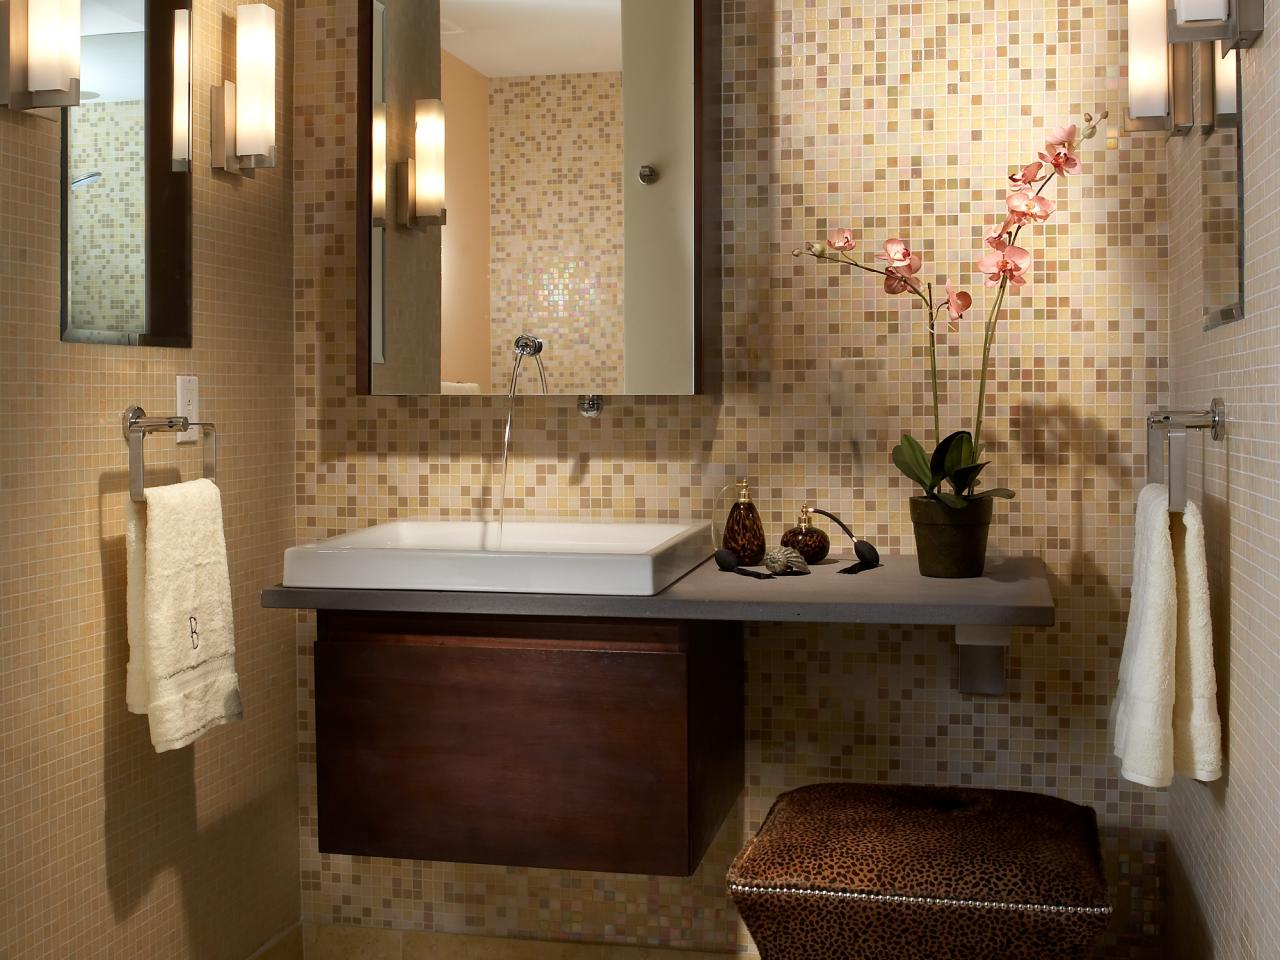 Small Bathroom Design Ideas top bathroom small bathroom designs on a budget along with small inside designs of small bathrooms perfect cool bathroom remodel ideas Tags